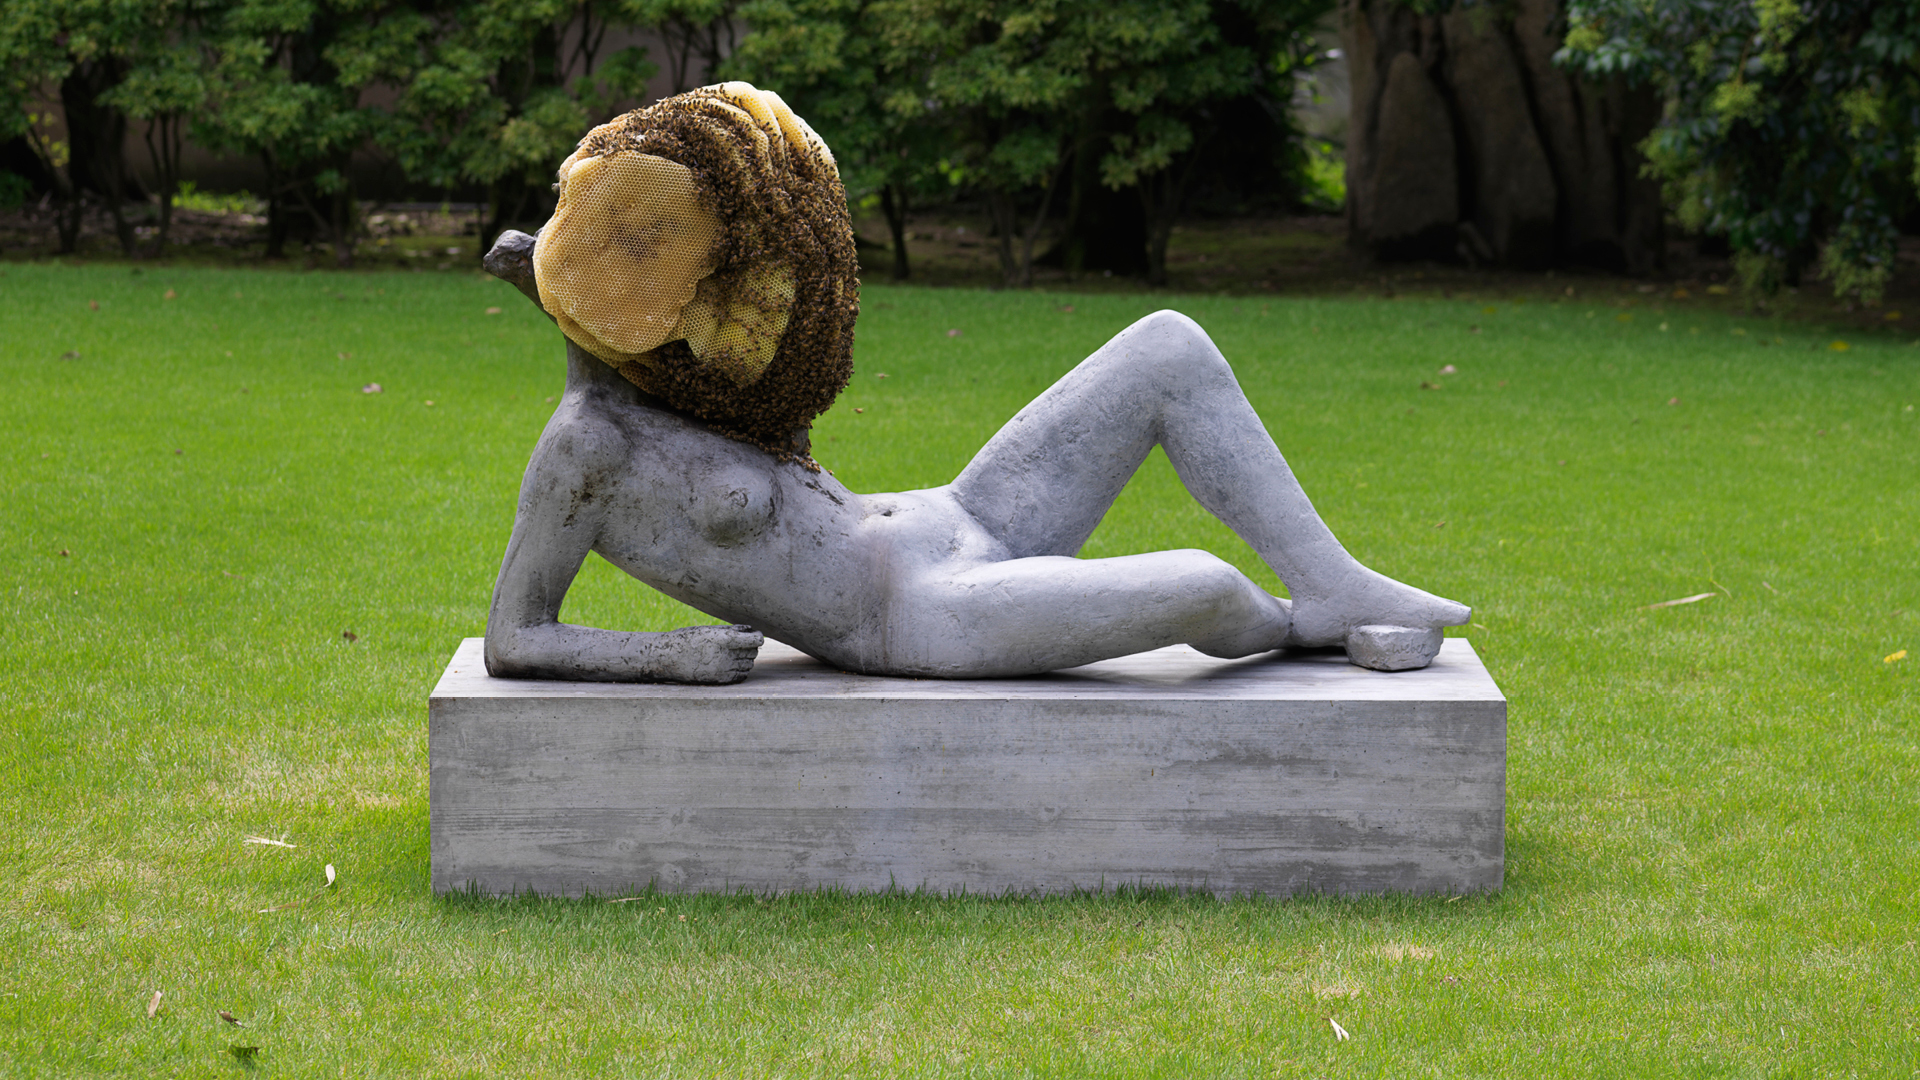 Pierre Huyghe, Untitled, 2012, concrete cast on steel armature with patina, beehive, collection of Ishikawa Foundation, supported by Yamada Bee Farm Corporation; Esther Schipper, Berlin | Okayama Art Summit | Japan | STIRworld